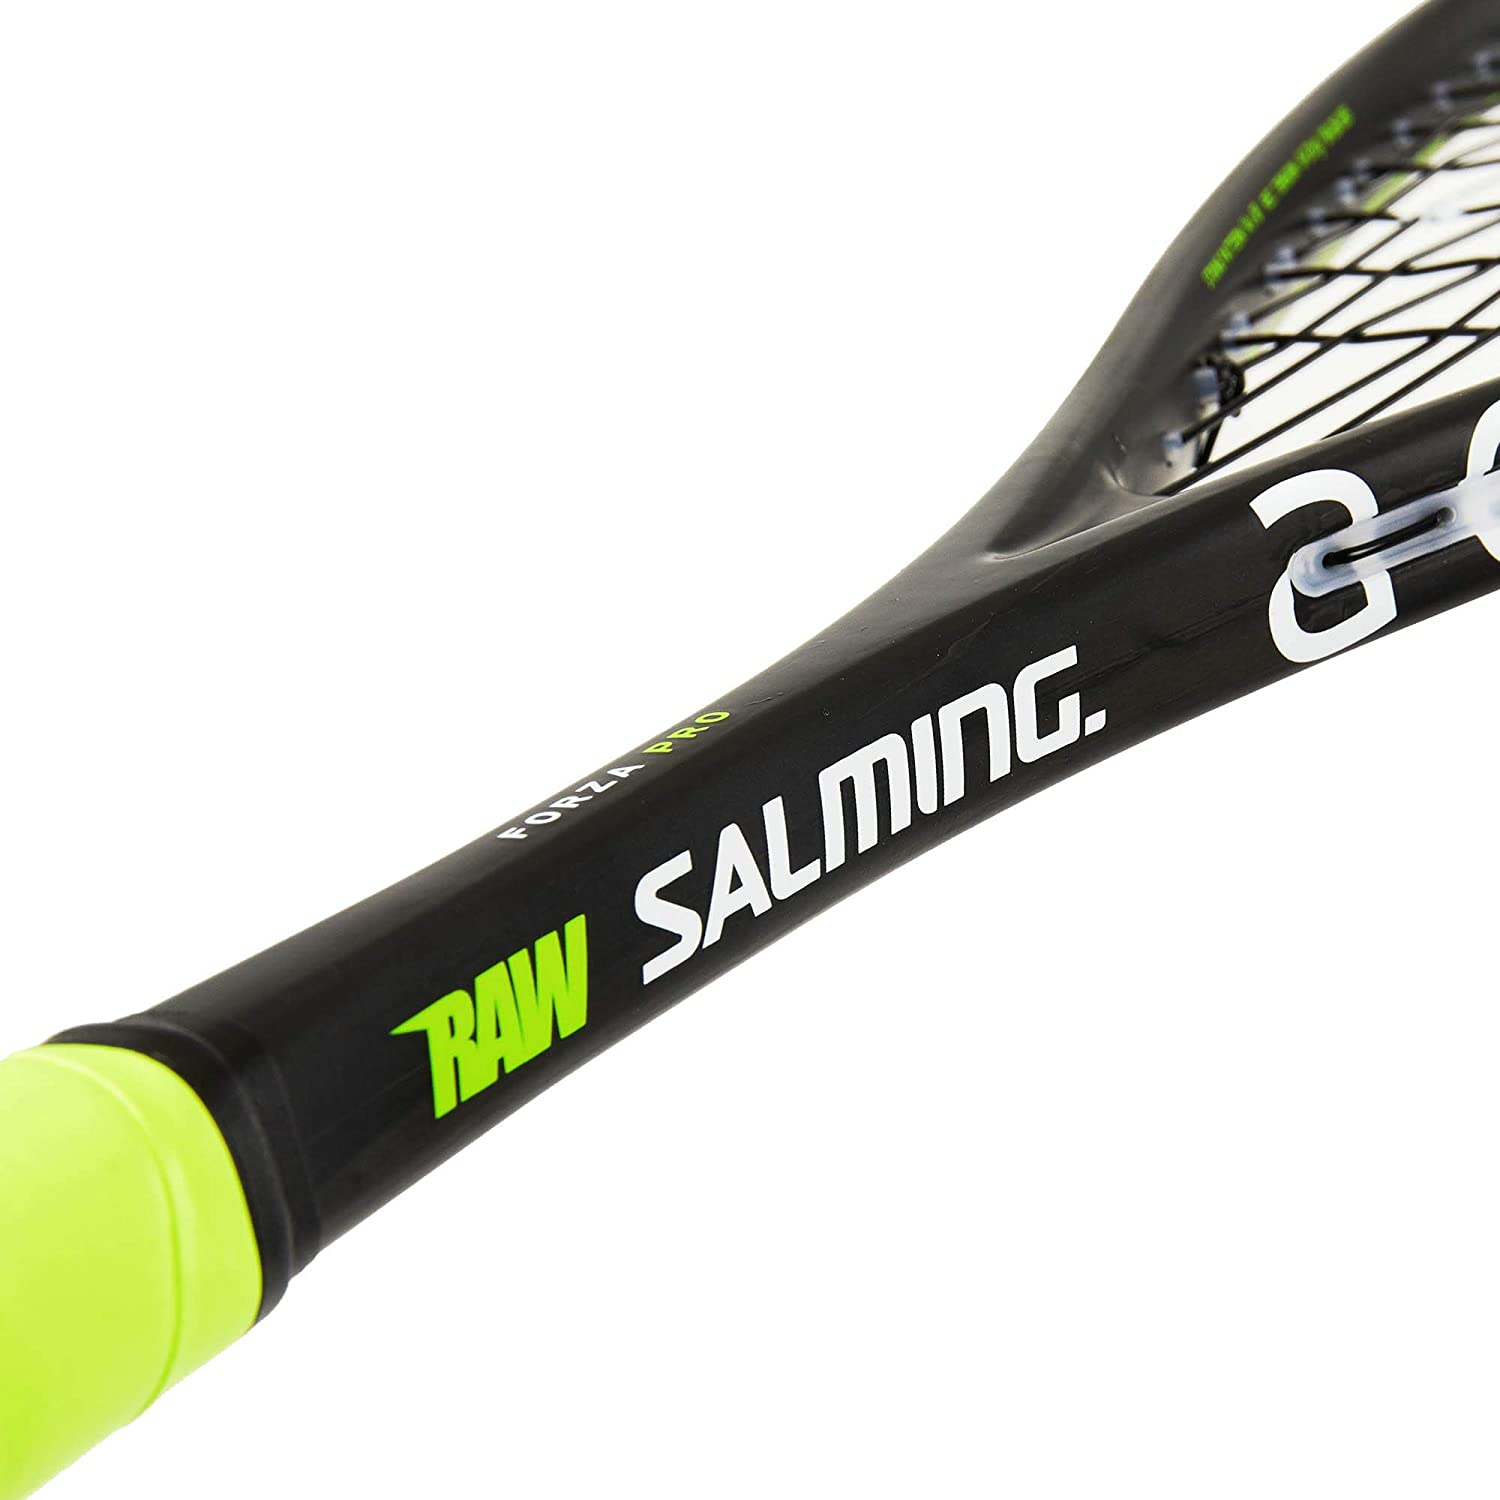 Amazon.com : Salming Forza Pro Squash Racquet (Black/Lime) : Sports & Outdoors